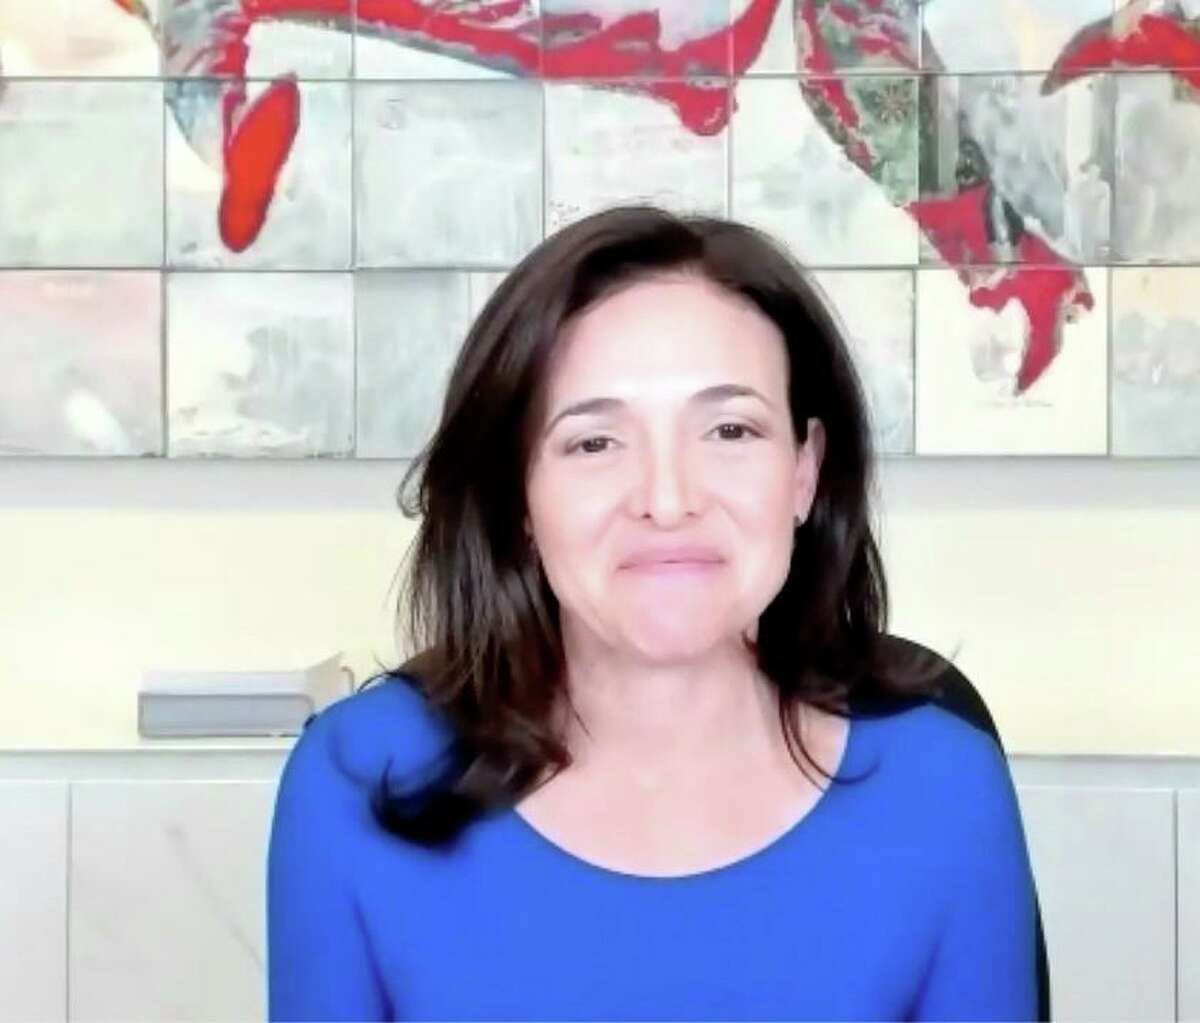 Sheryl Sandberg, chief operating officer at Facebook, talks about Facebook's campaign to spotlight Black-owned small businesses through the month of November.